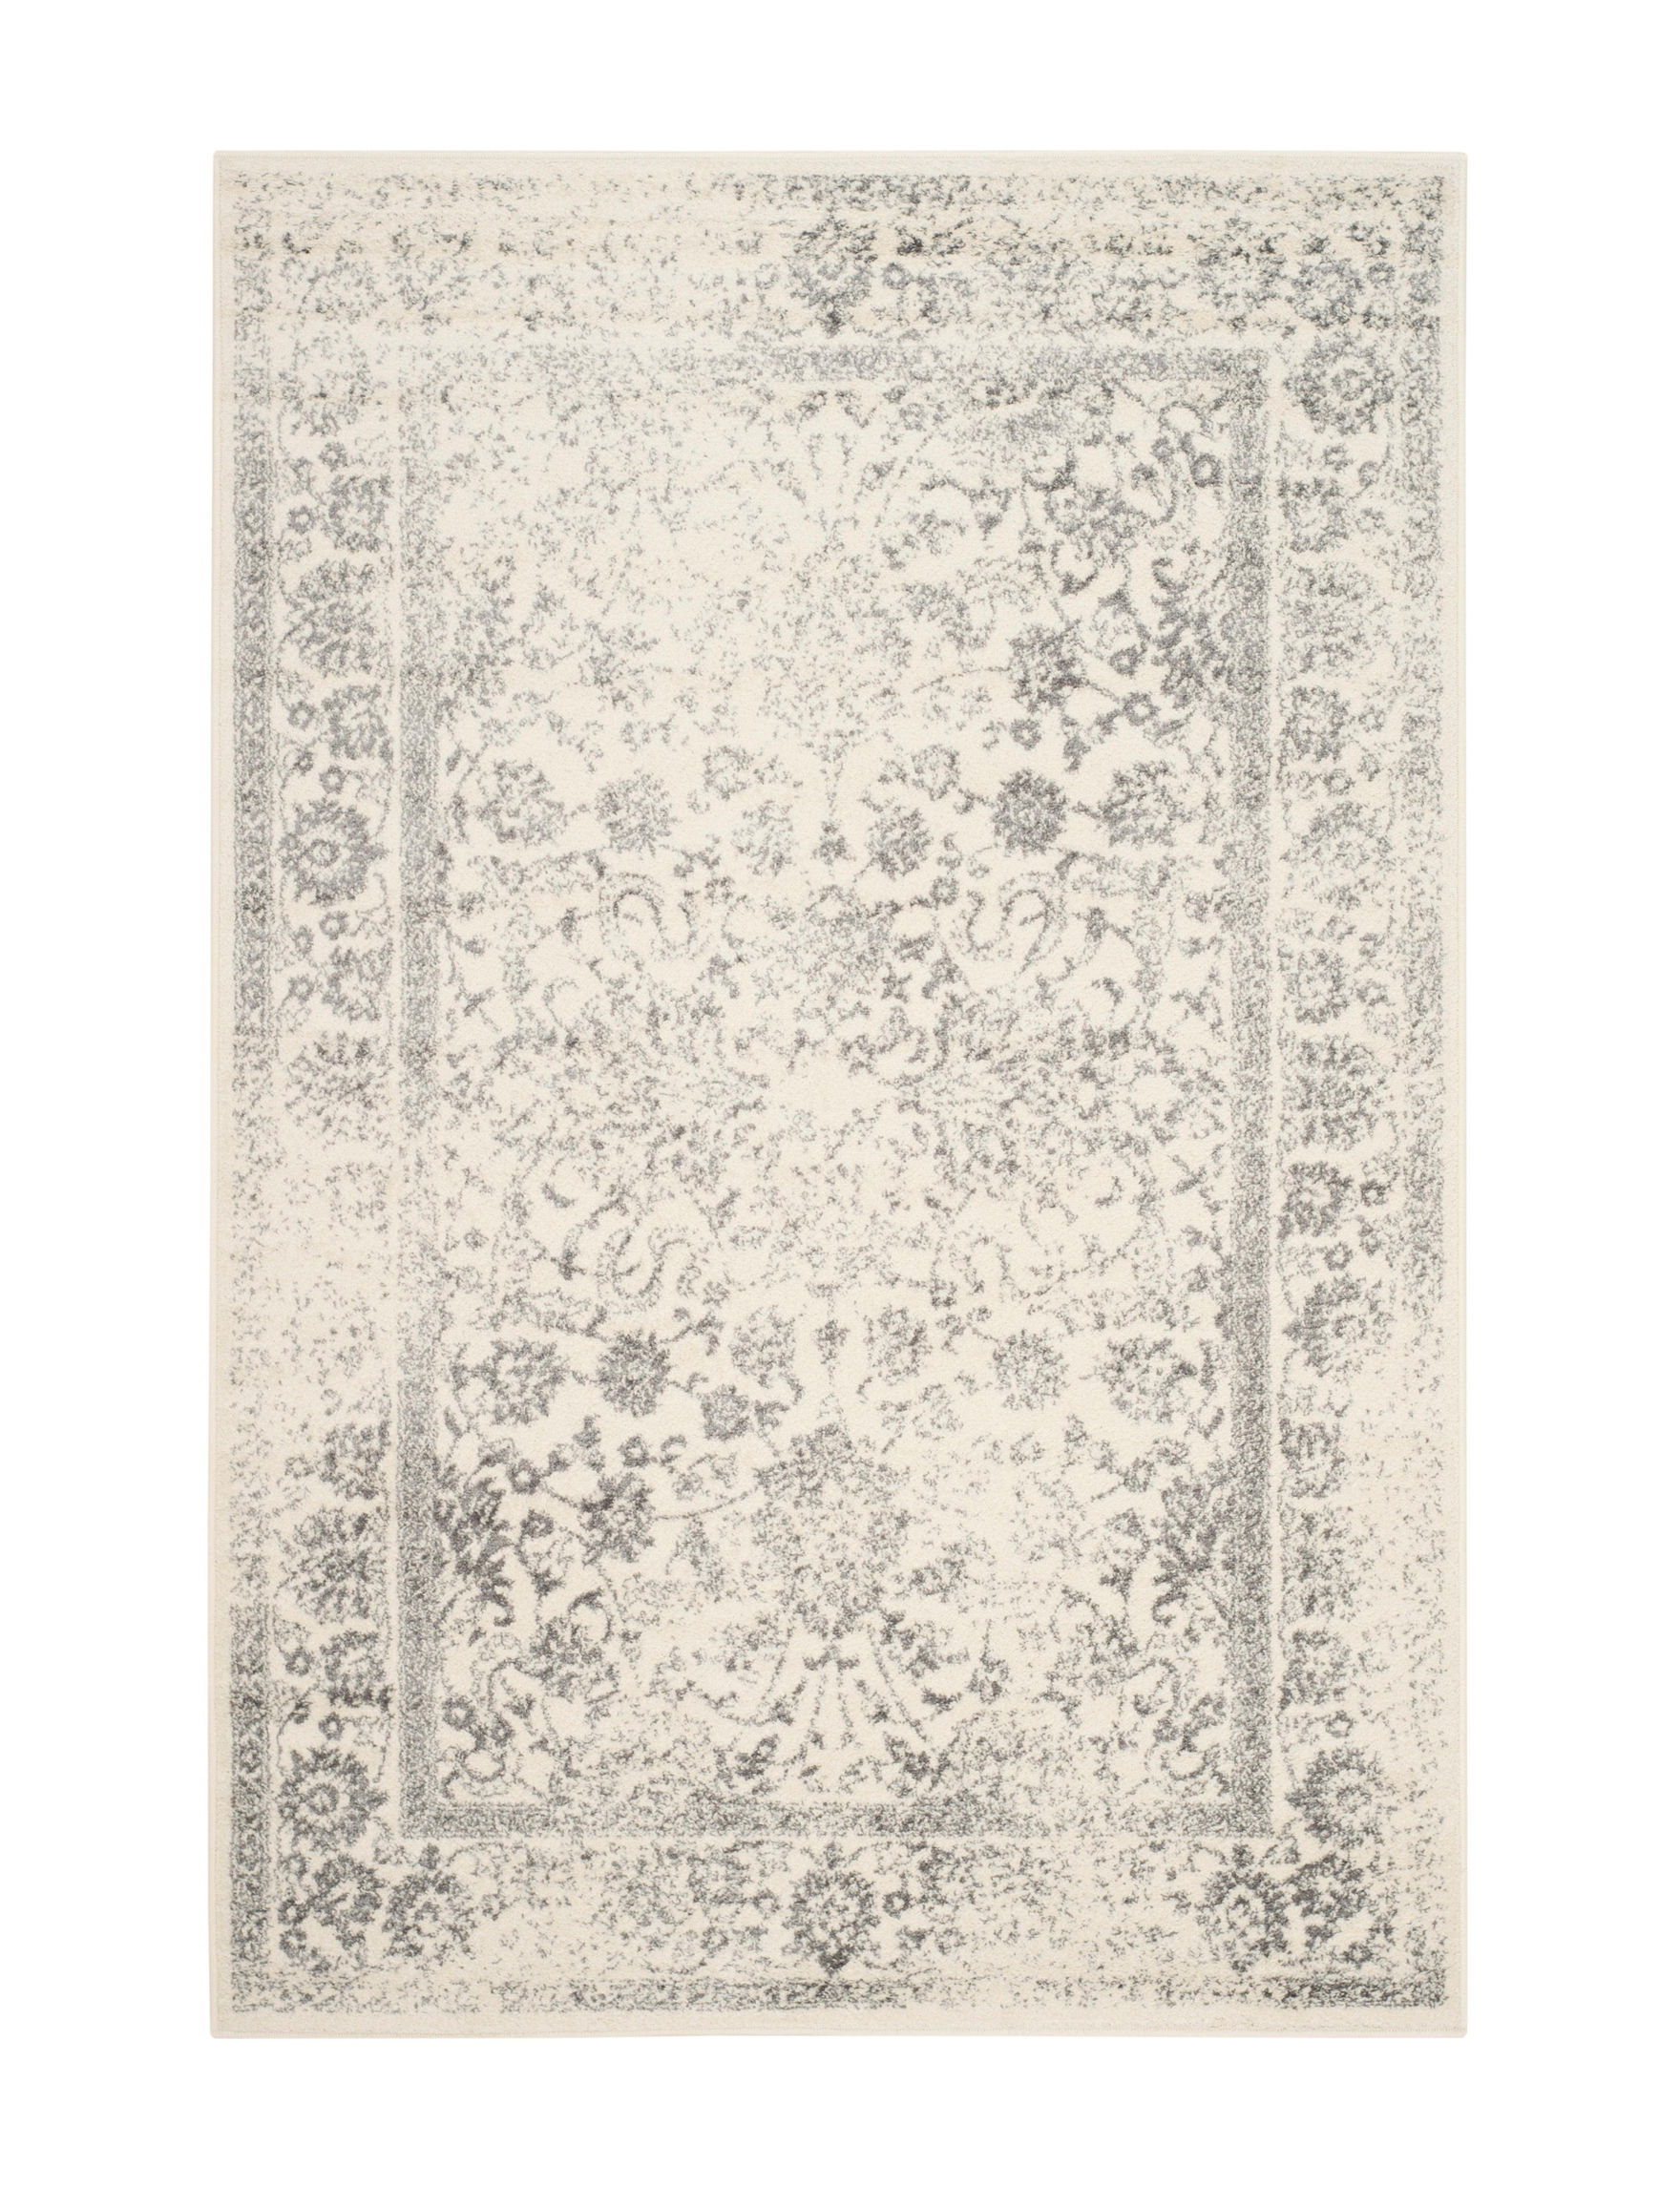 Safavieh Ivory / Silver Area Rugs Rugs